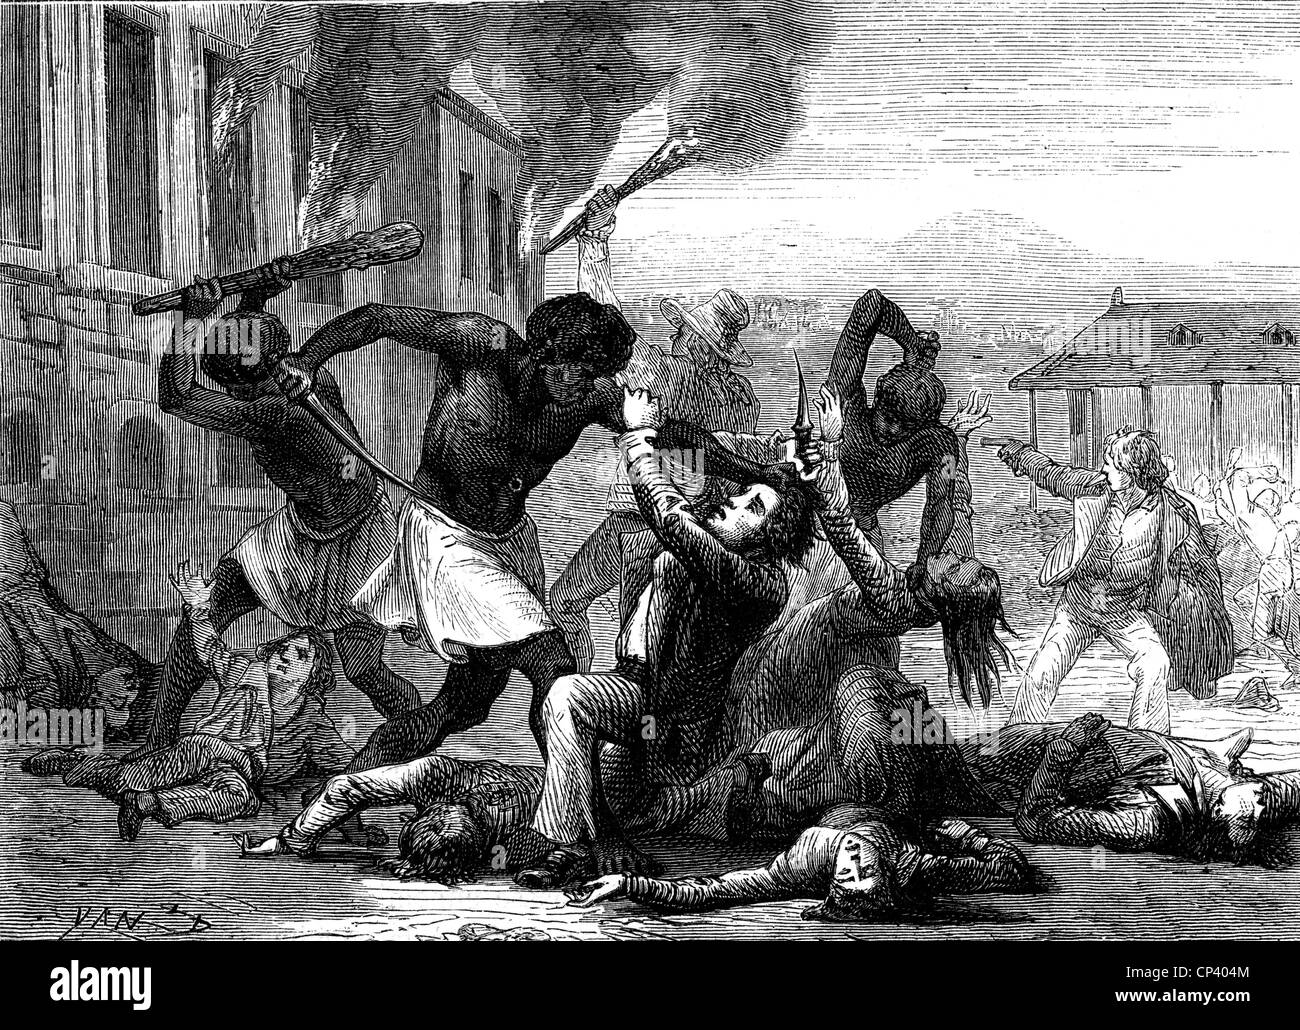 events, Haitian Revolution 1791 - 1804, Additional-Rights-Clearences-NA